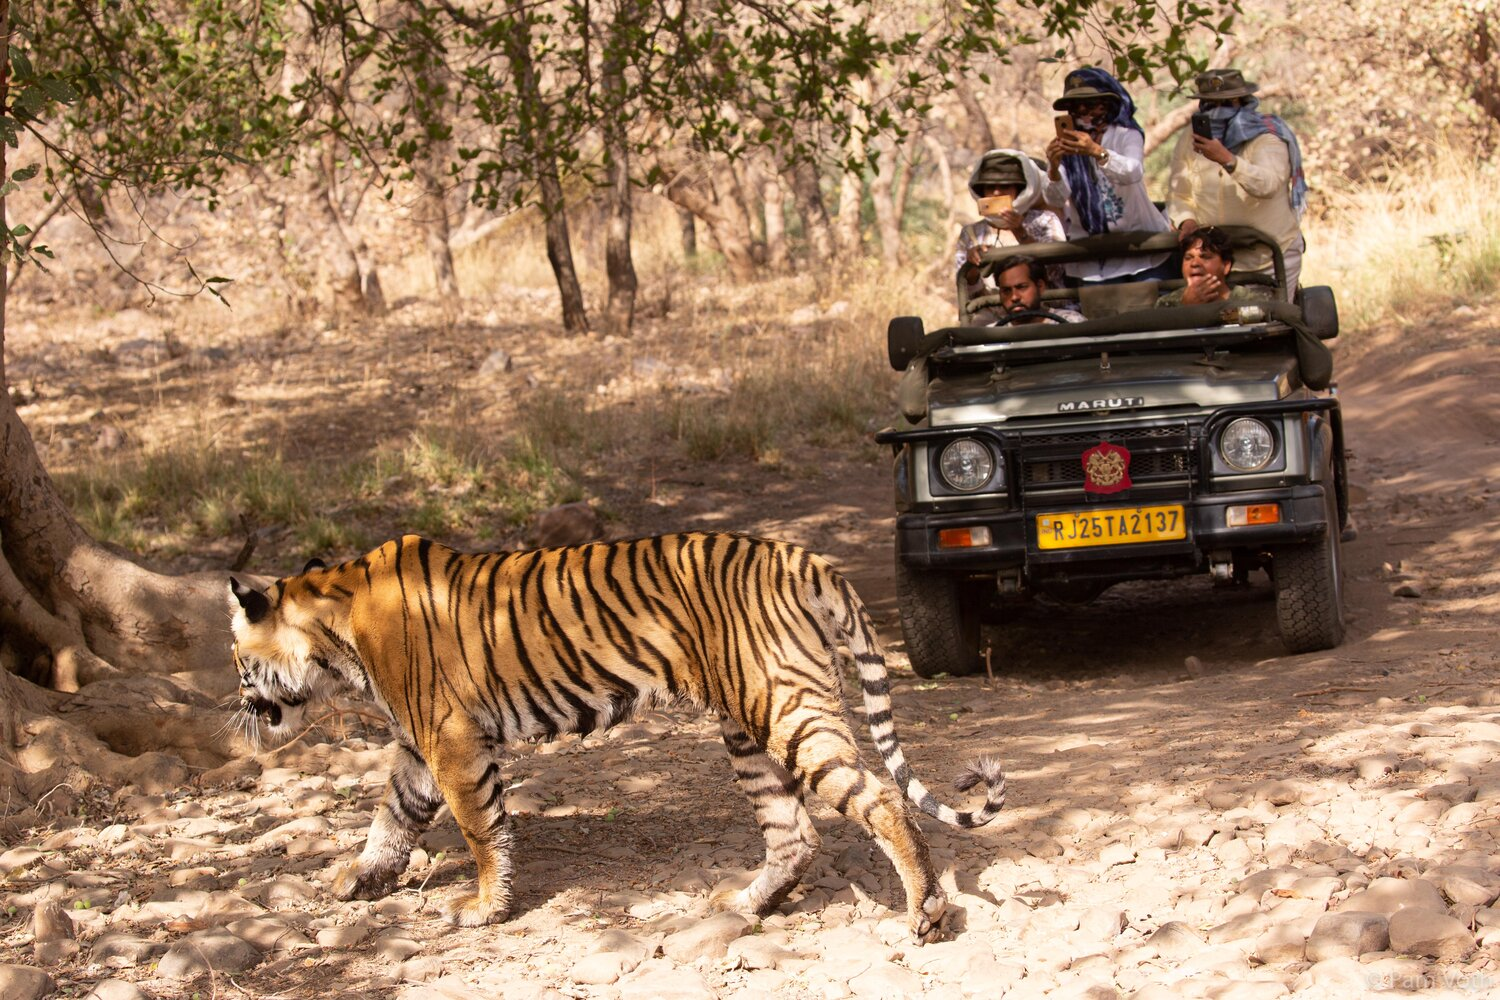 India Tiger Safari by Pam Voth